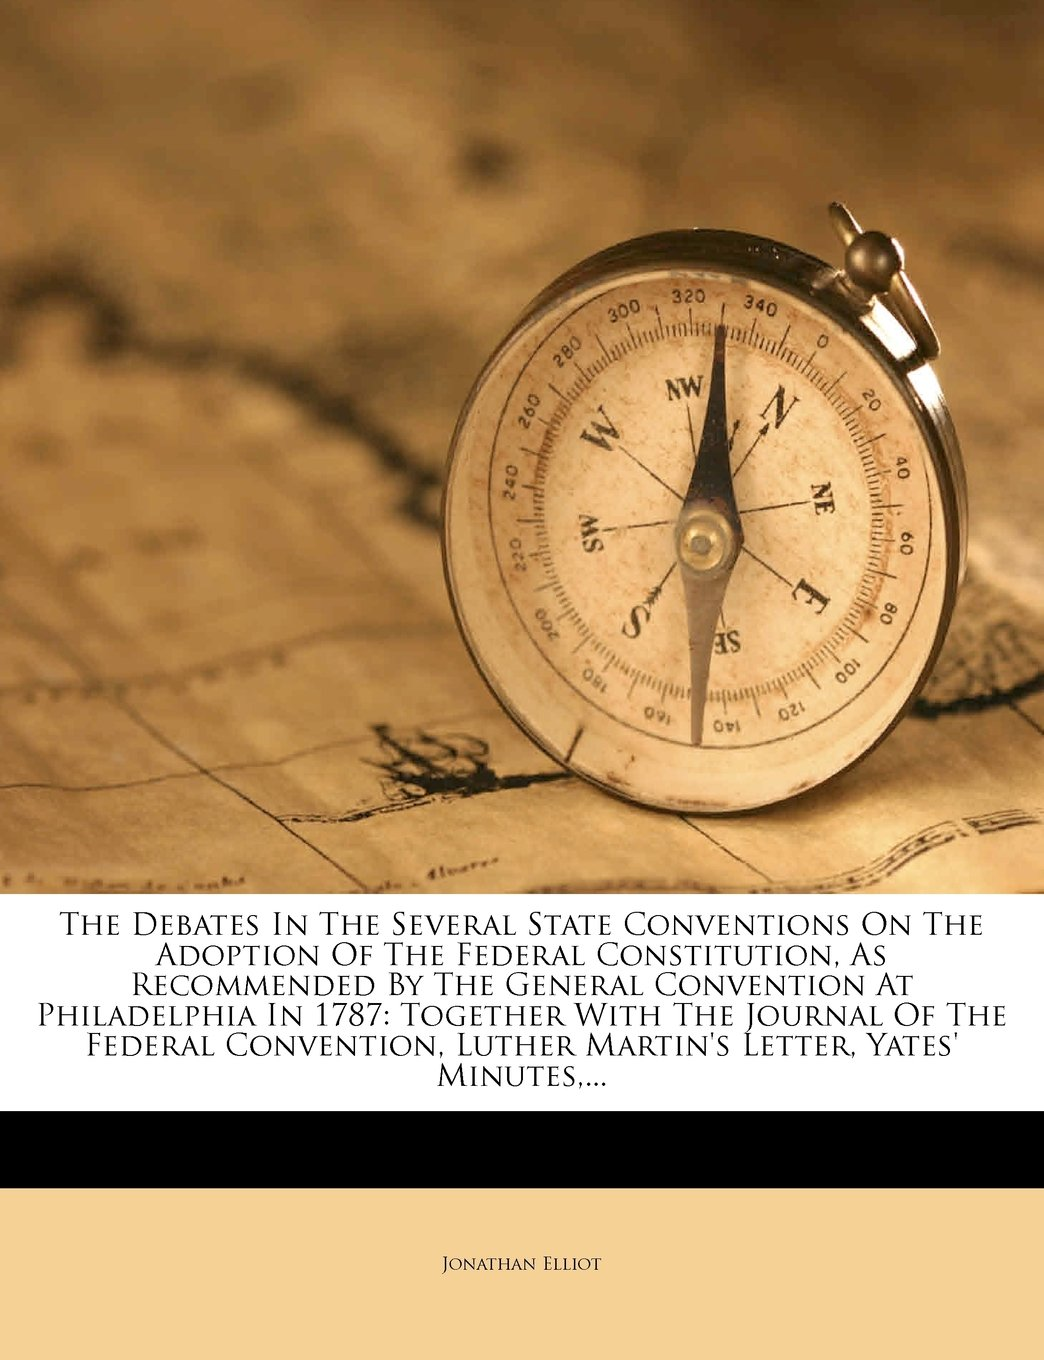 The Debates In The Several State Conventions On The Adoption Of The Federal Constitution, As Recommended By The General Convention At Philadelphia In ... Luther Martin's Letter, Yates' Minutes,... pdf